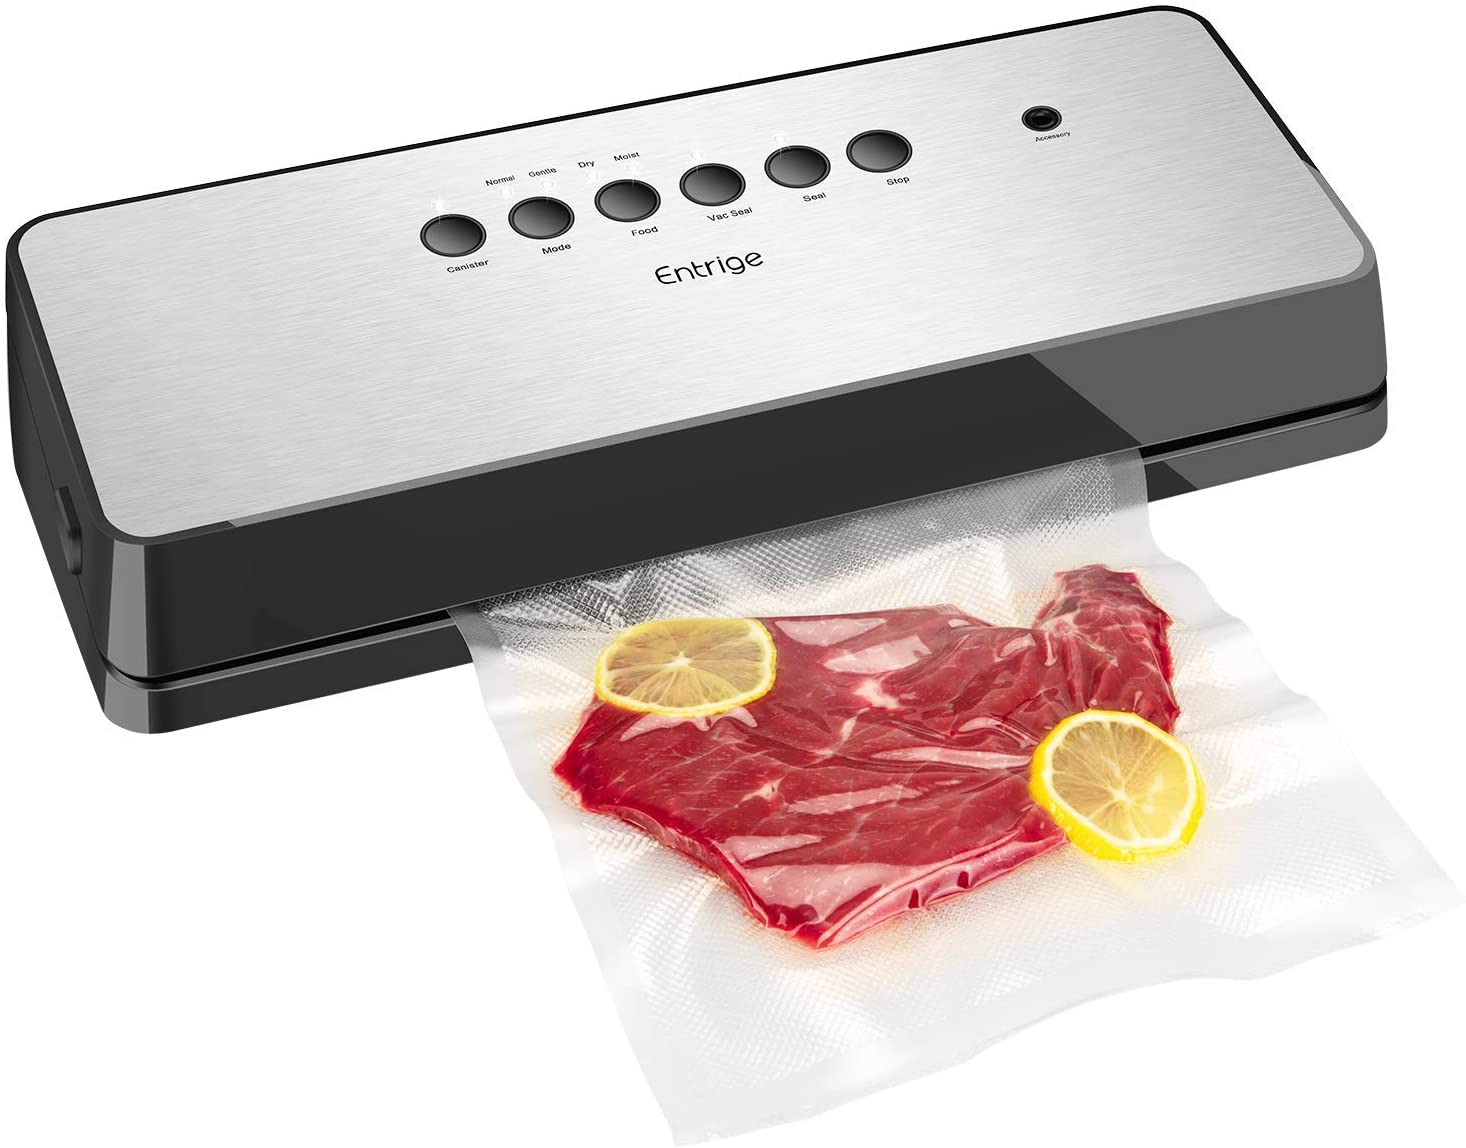 Entrige Vacuum Sealer Machine, Automatic Food Sealer for Food Savers w/Starter Kit, Dry Moist Food Modes, Easy to Clean, Led Indicator Lights, Compact Design, Silver(Stainless Steel)